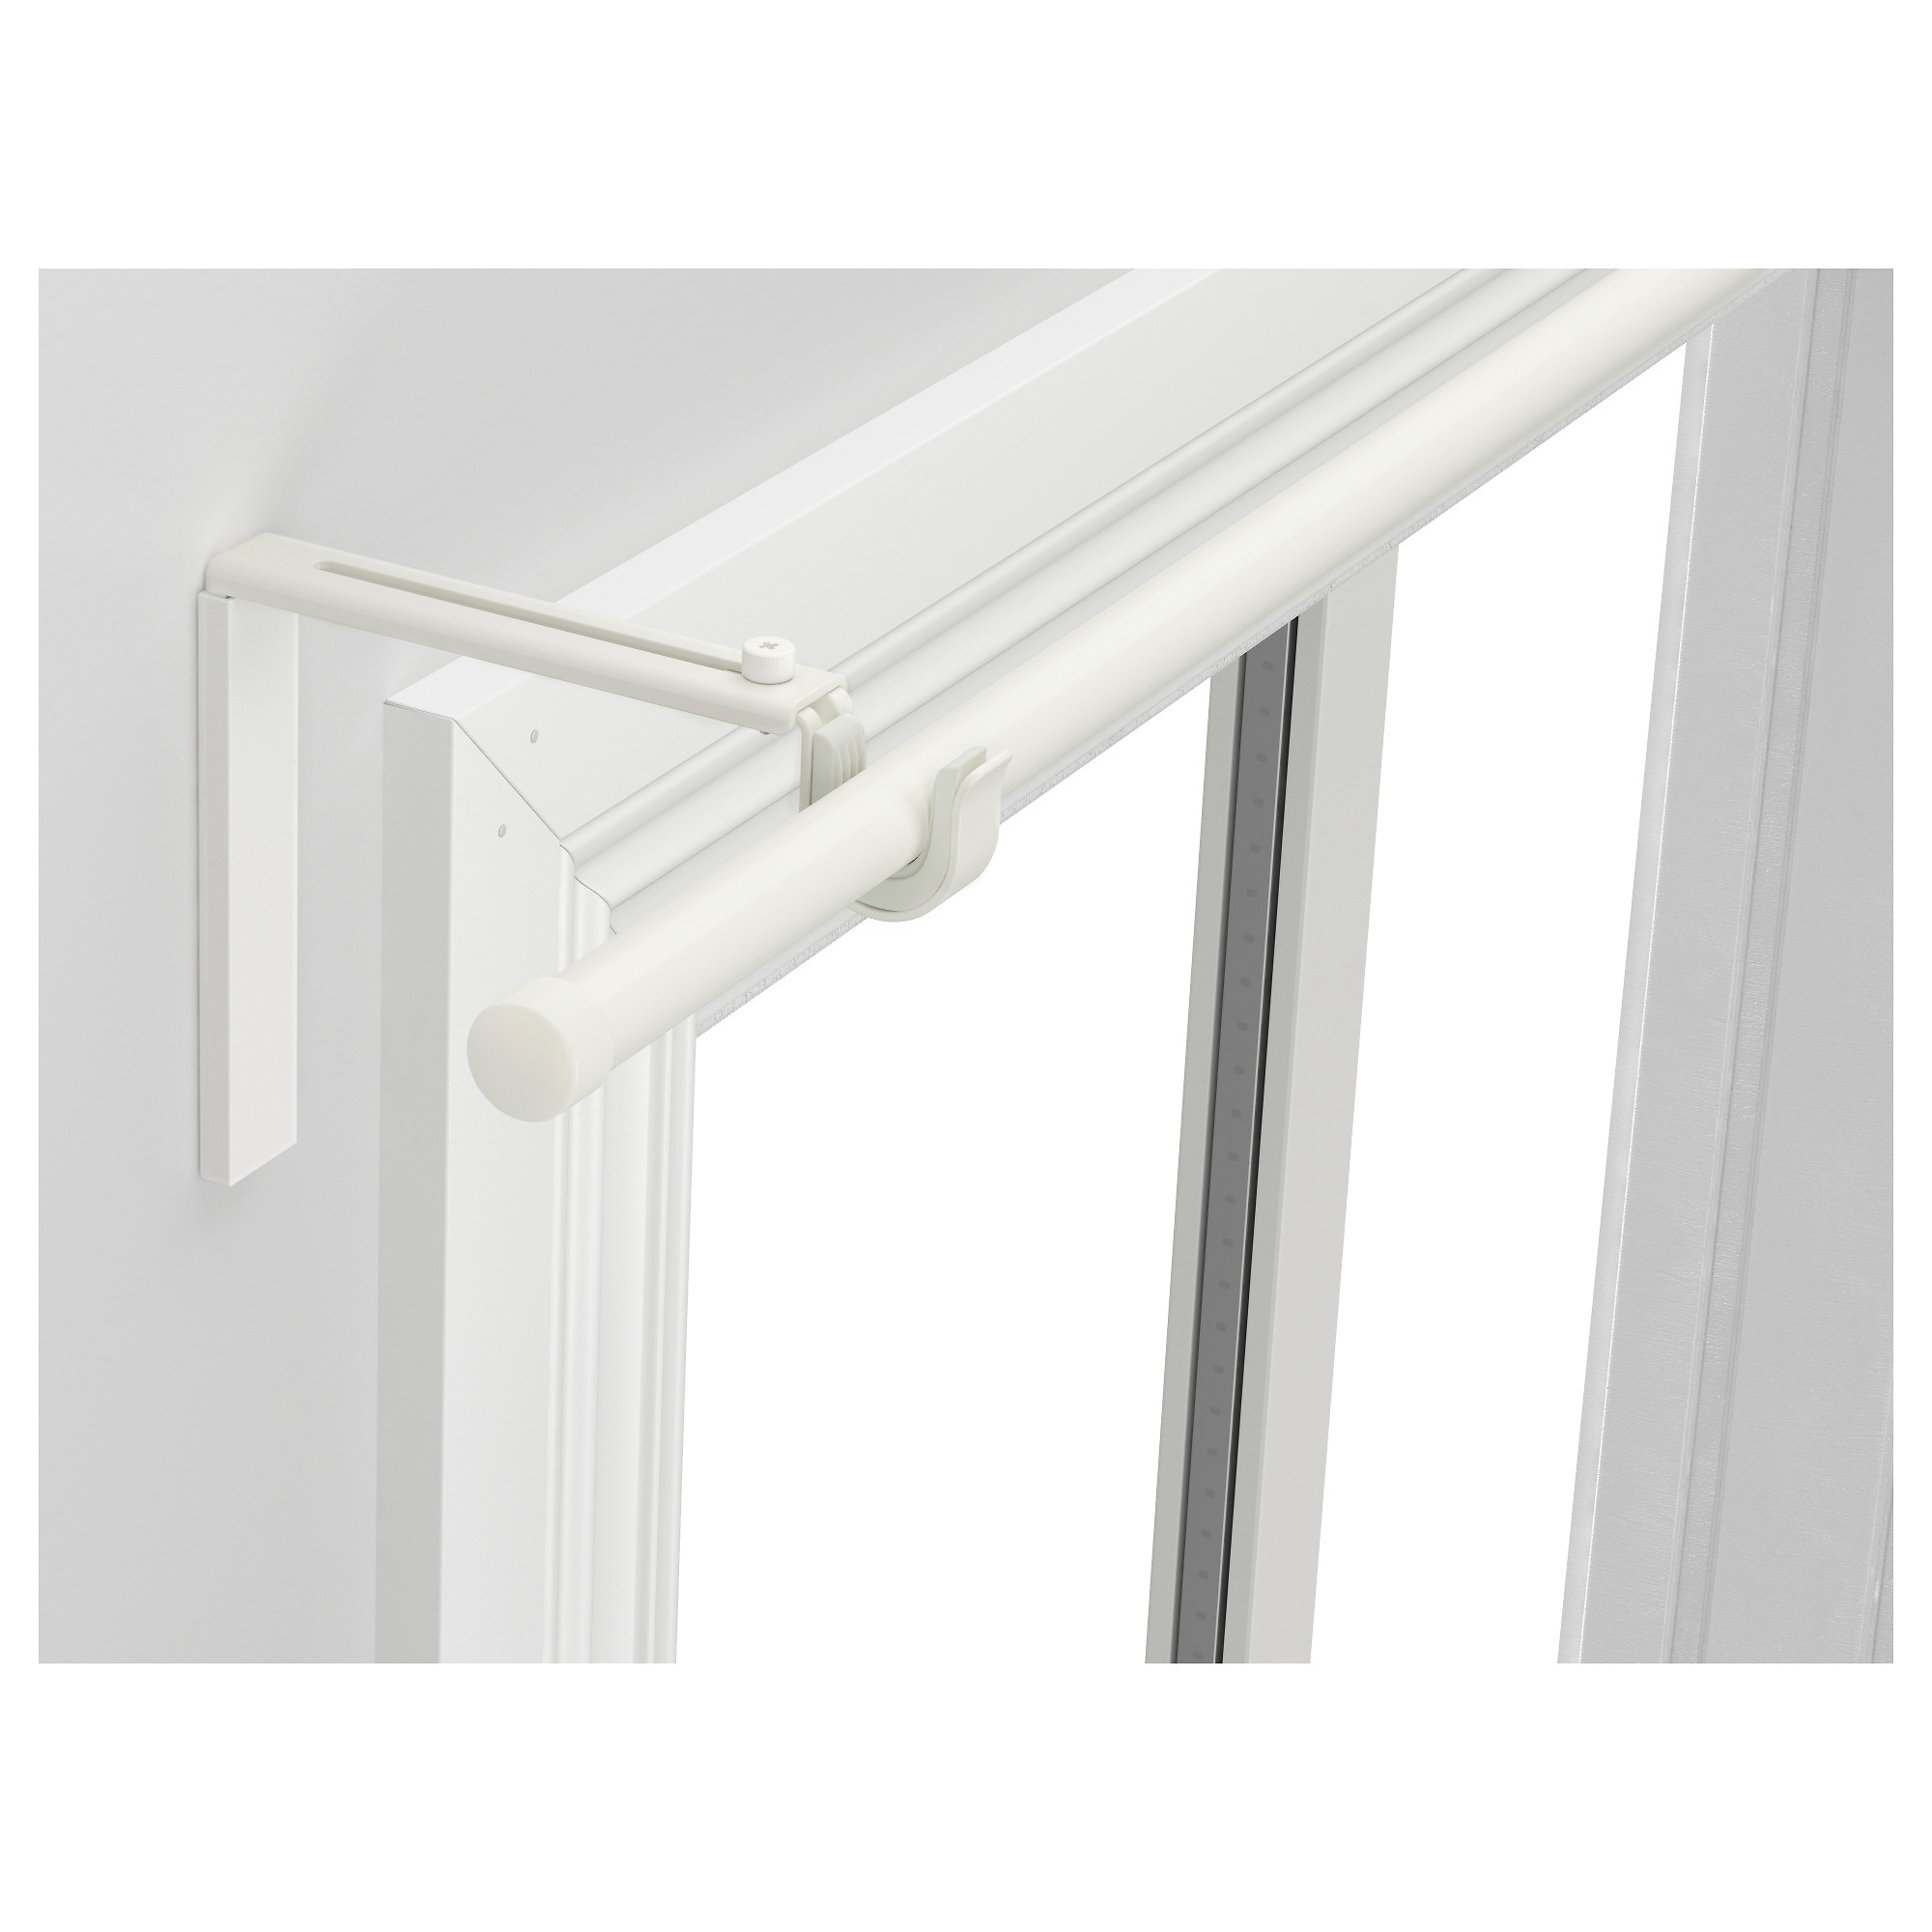 Tension Rod Ikea Have Marvelous Interior With Outstanding Window Decoration